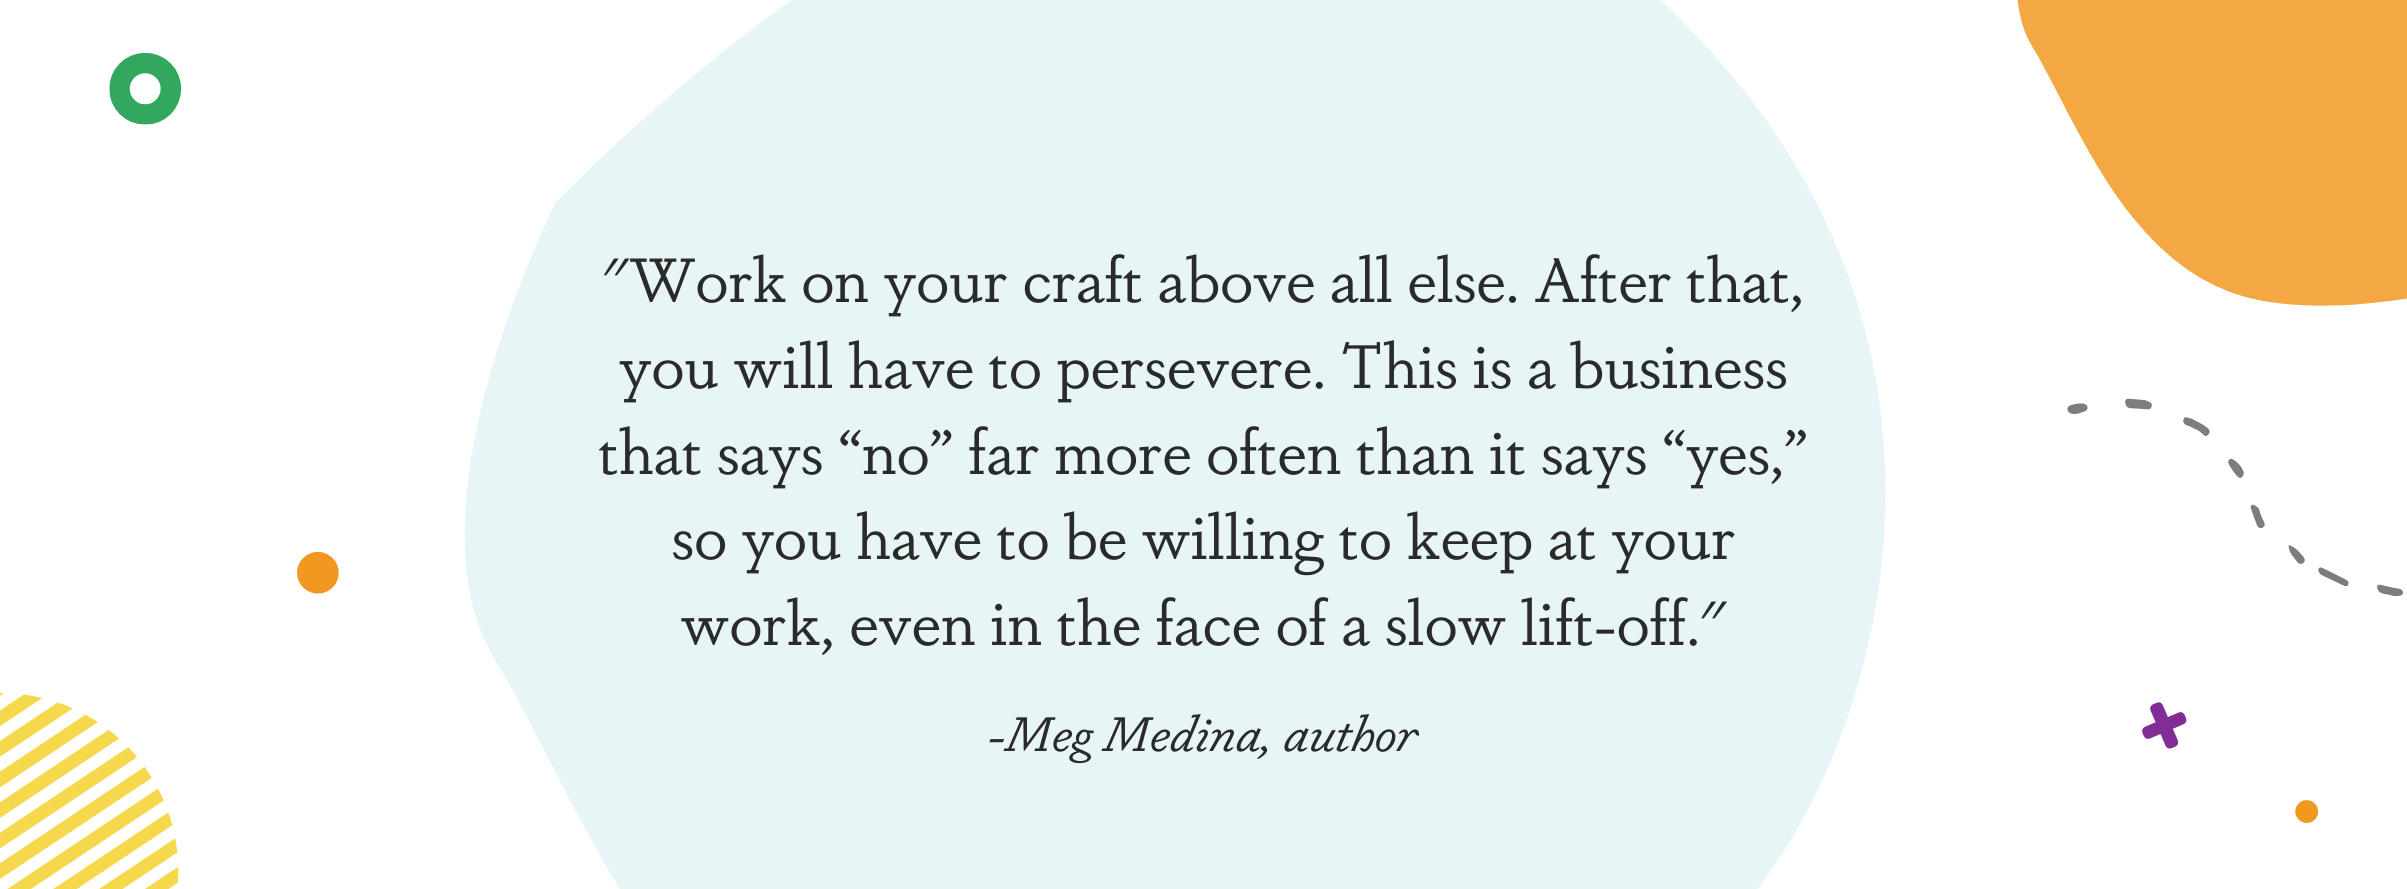 """Image displaying a quote from Meg Medina: """"Work on your craft above all else. After that, you will have to persevere. This is a business that says """"no"""" far more often than it says """"yes,"""" so you have to be willing to keep at your work, even in the face of a slow lift-off."""""""